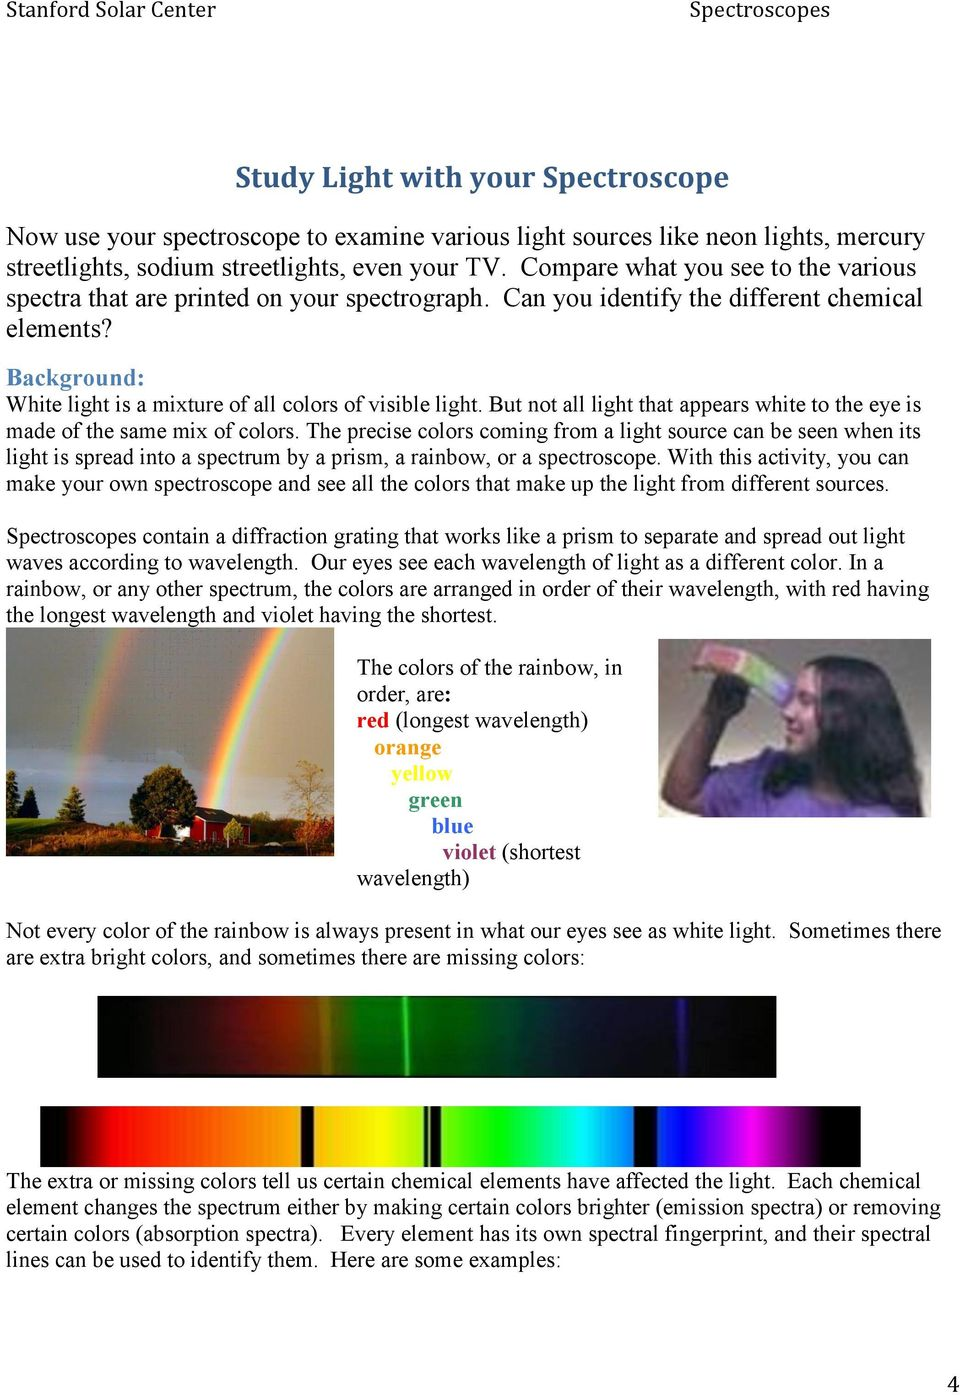 Background: White light is a mixture of all colors of visible light. But not all light that appears white to the eye is made of the same mix of colors.